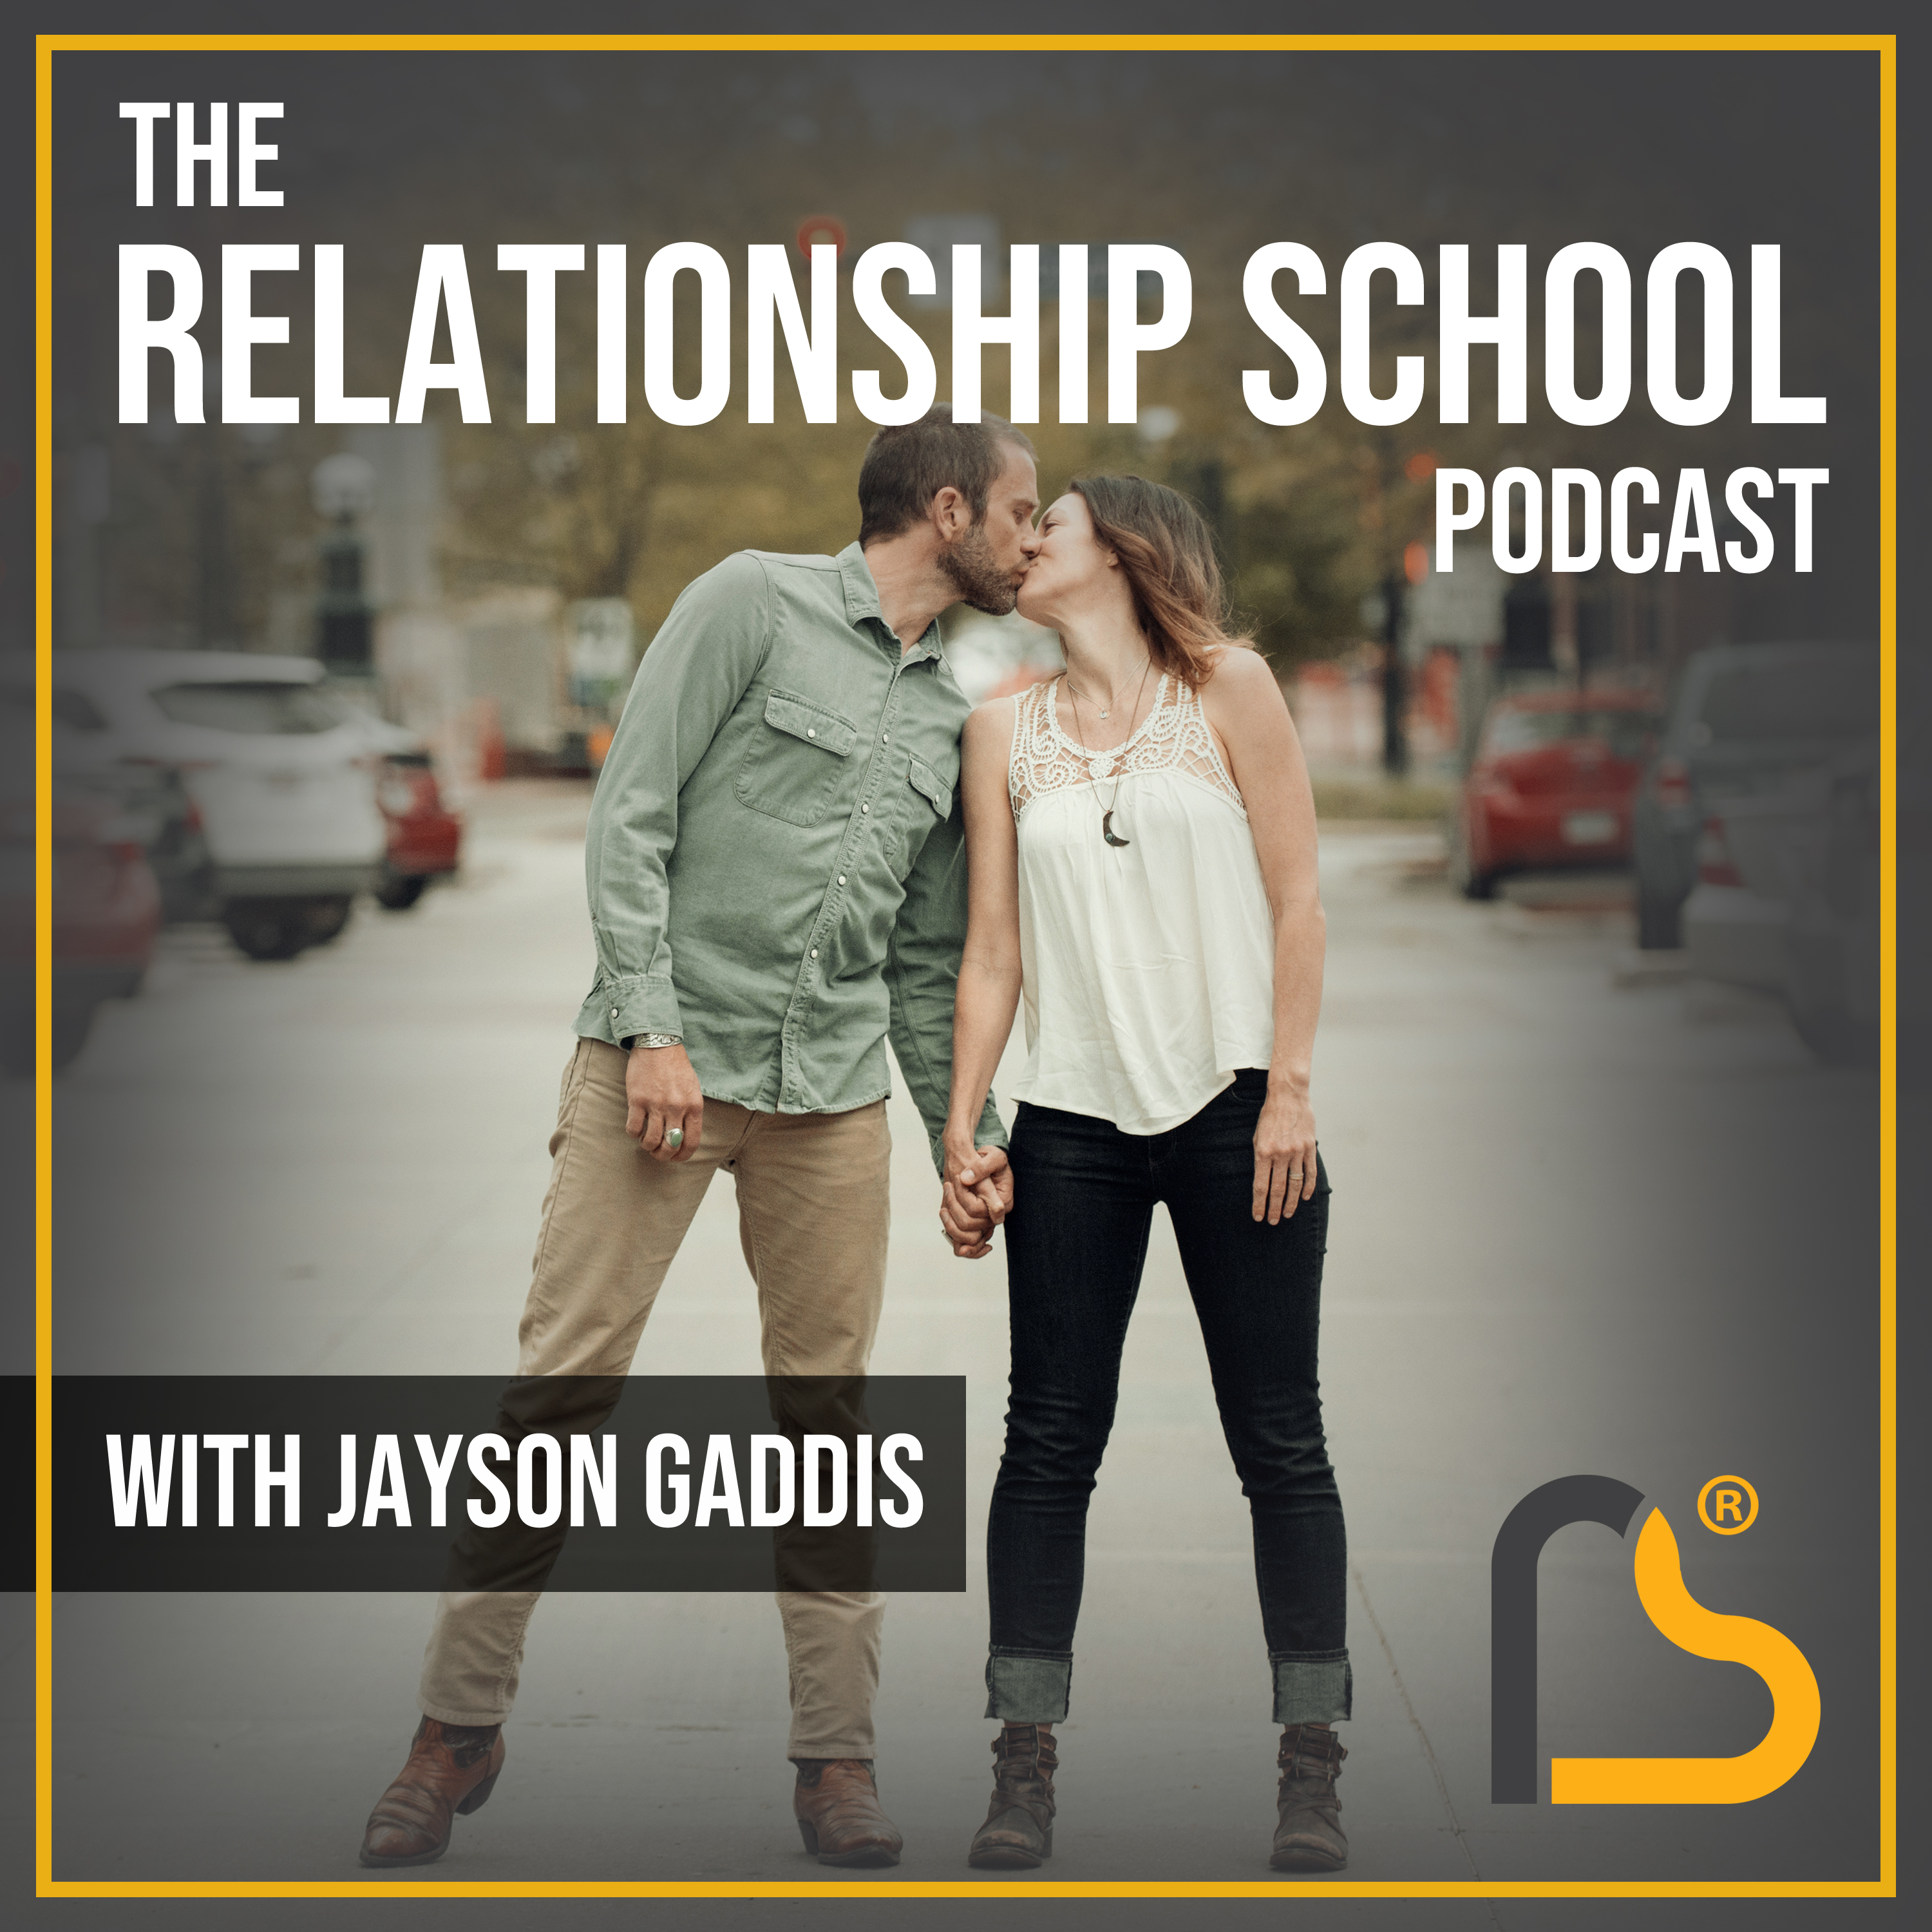 The Relationship School Podcast - Stephen Porges On How Facial Expressions Impact Your Relationships - Relationship School Podcast EPISODE 247